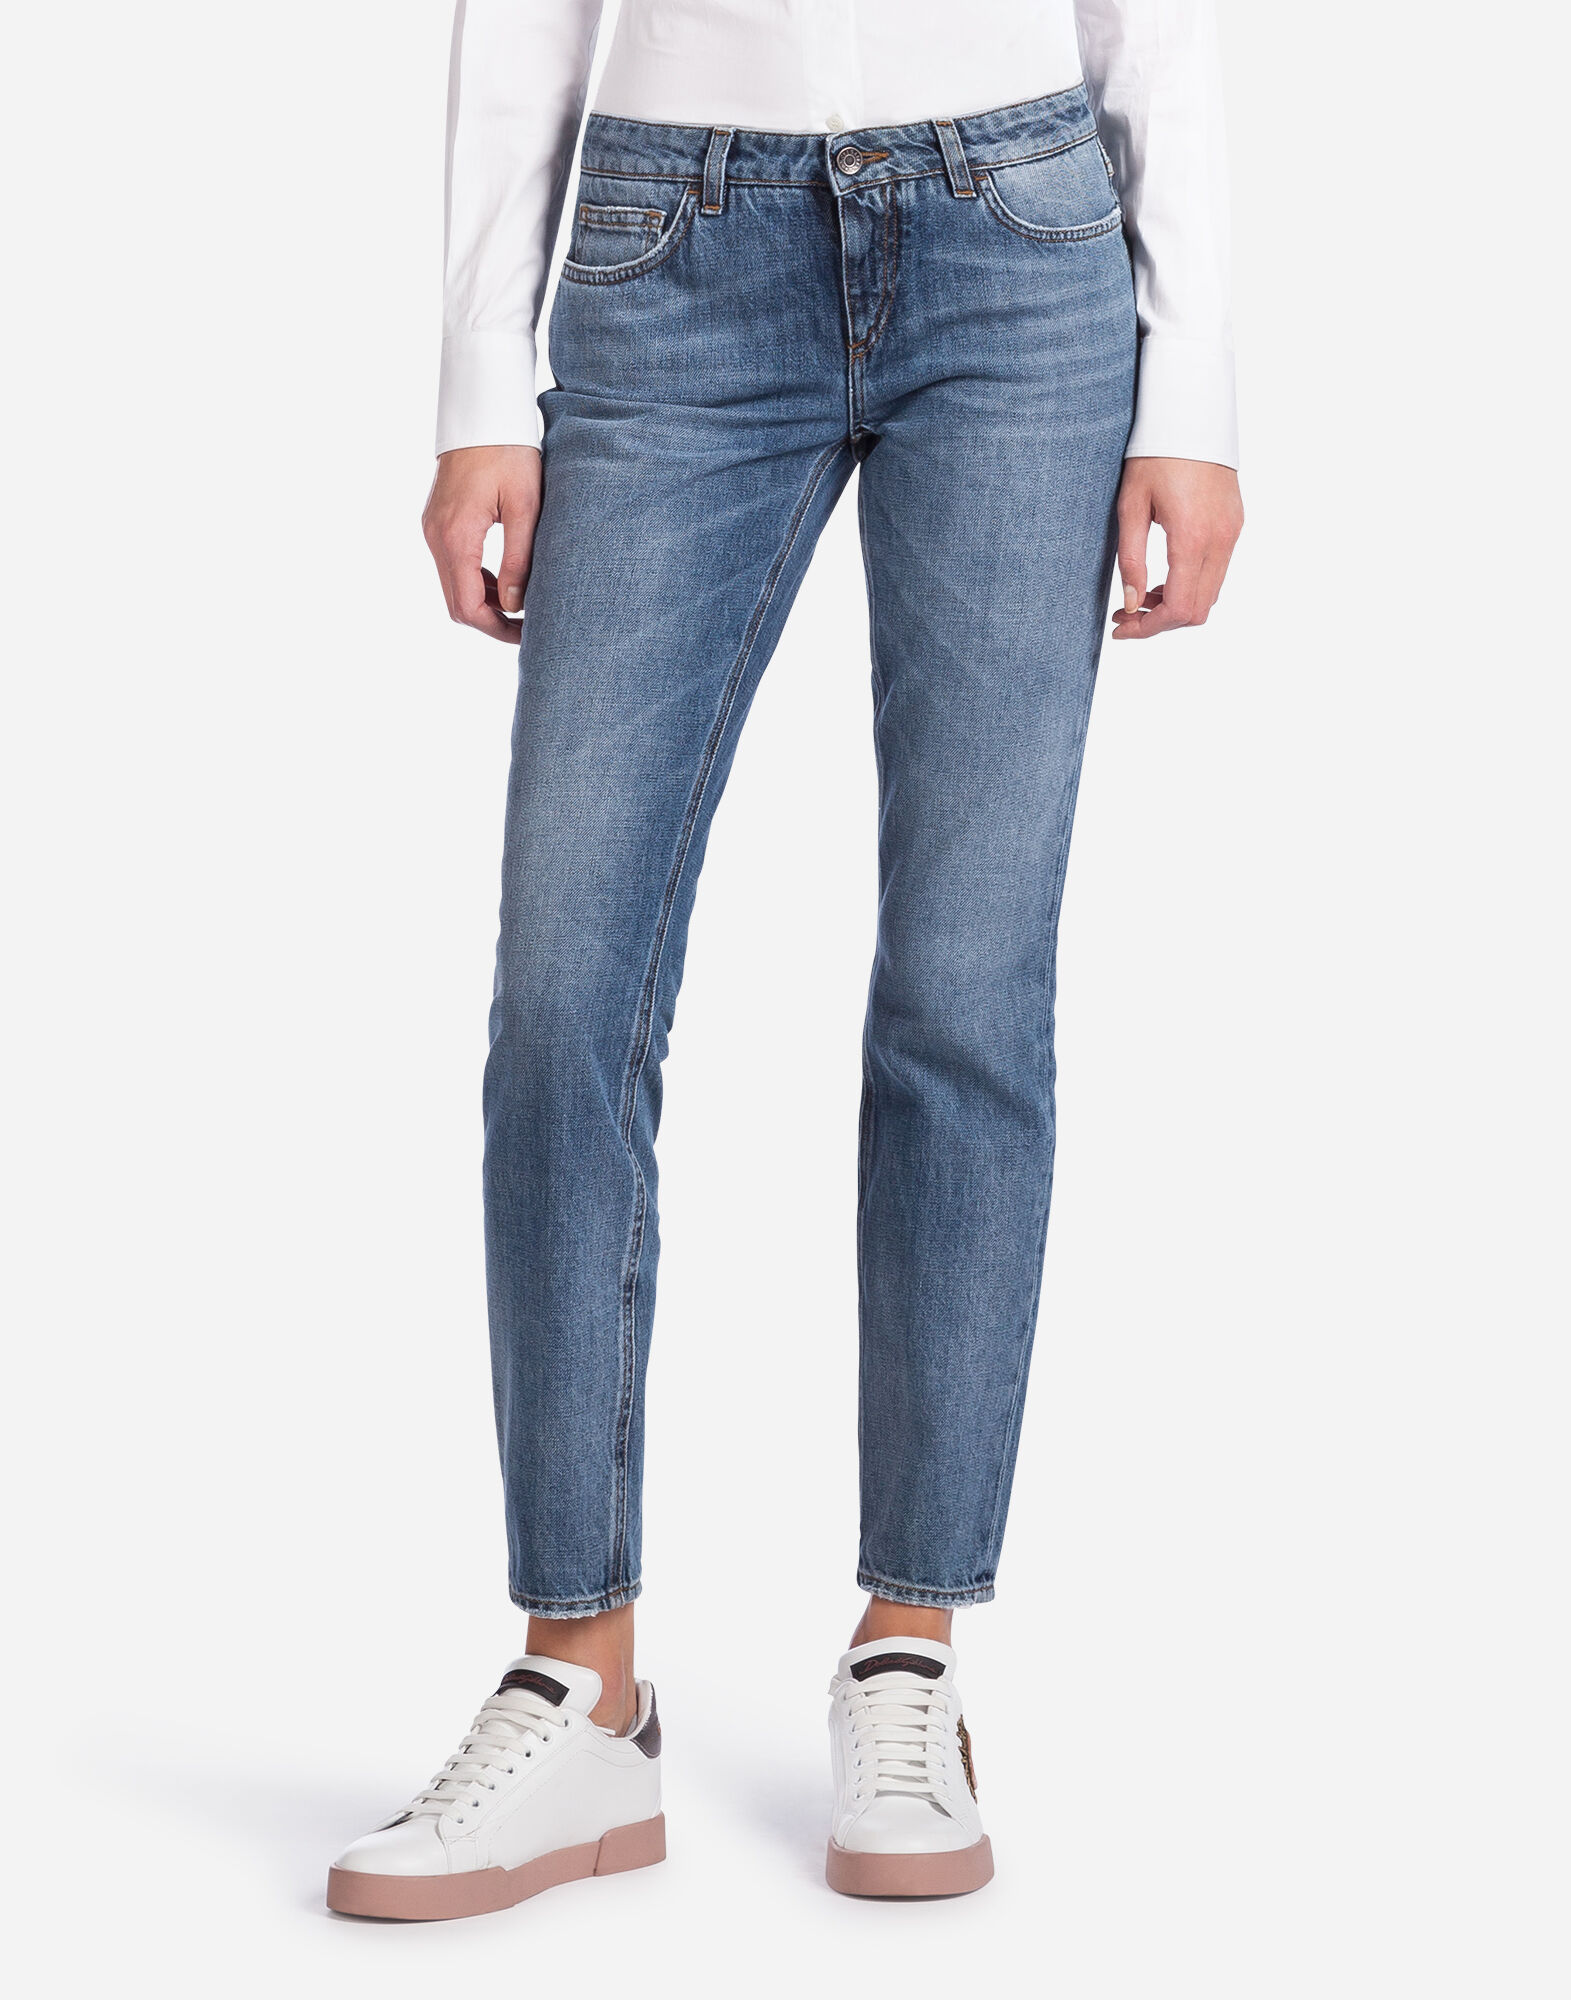 PRETTY FIT JEANS IN NON-STRETCH DENIM